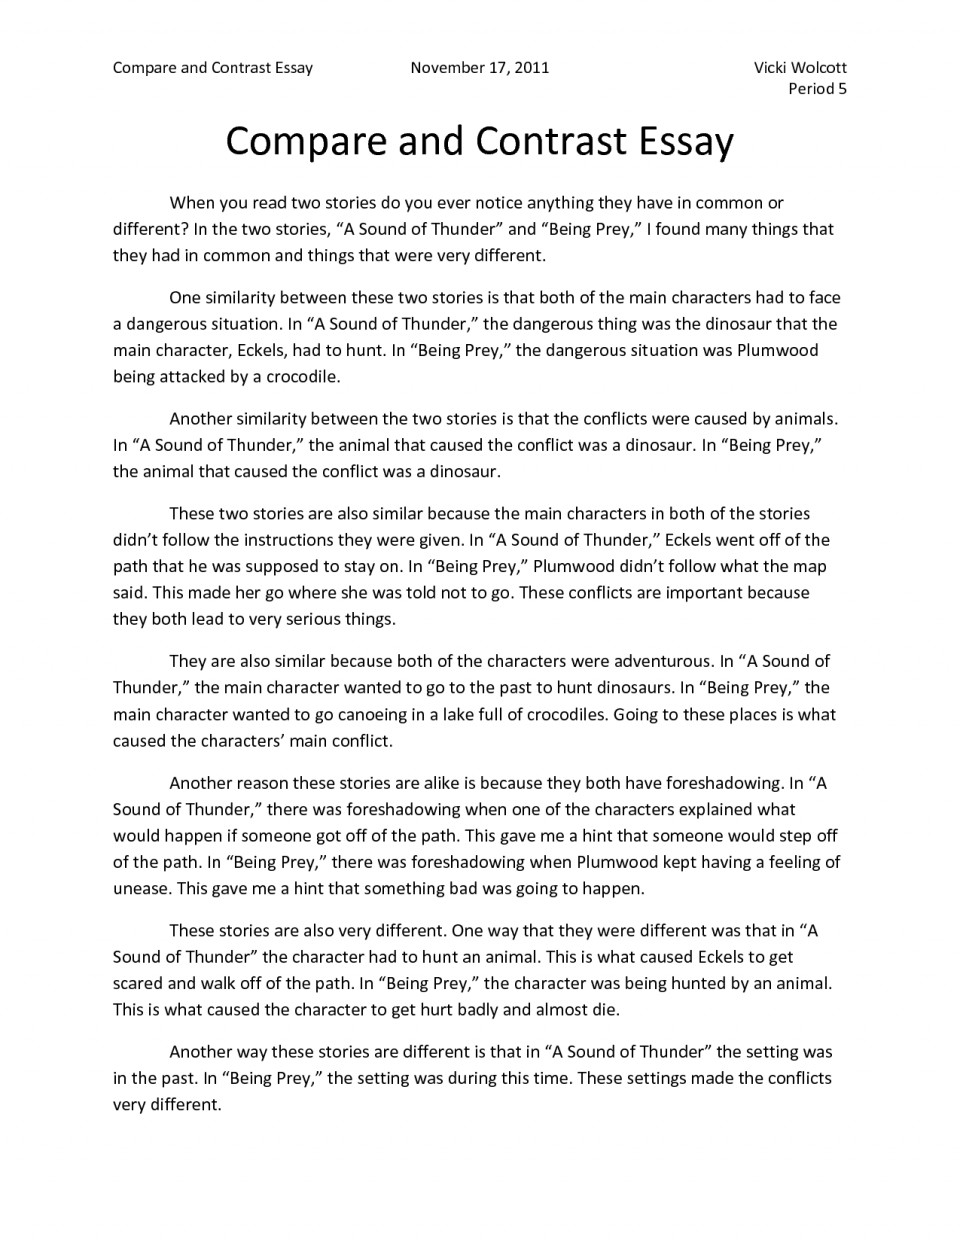 004 Essay Example Compare And Contrast Gallery Template Drawing Art Throughout College Examples Introduction Question Scholarship Free Edexcel Conclusion Frightening Topics For Students Rubric 4th Grade Ideas 7th 960